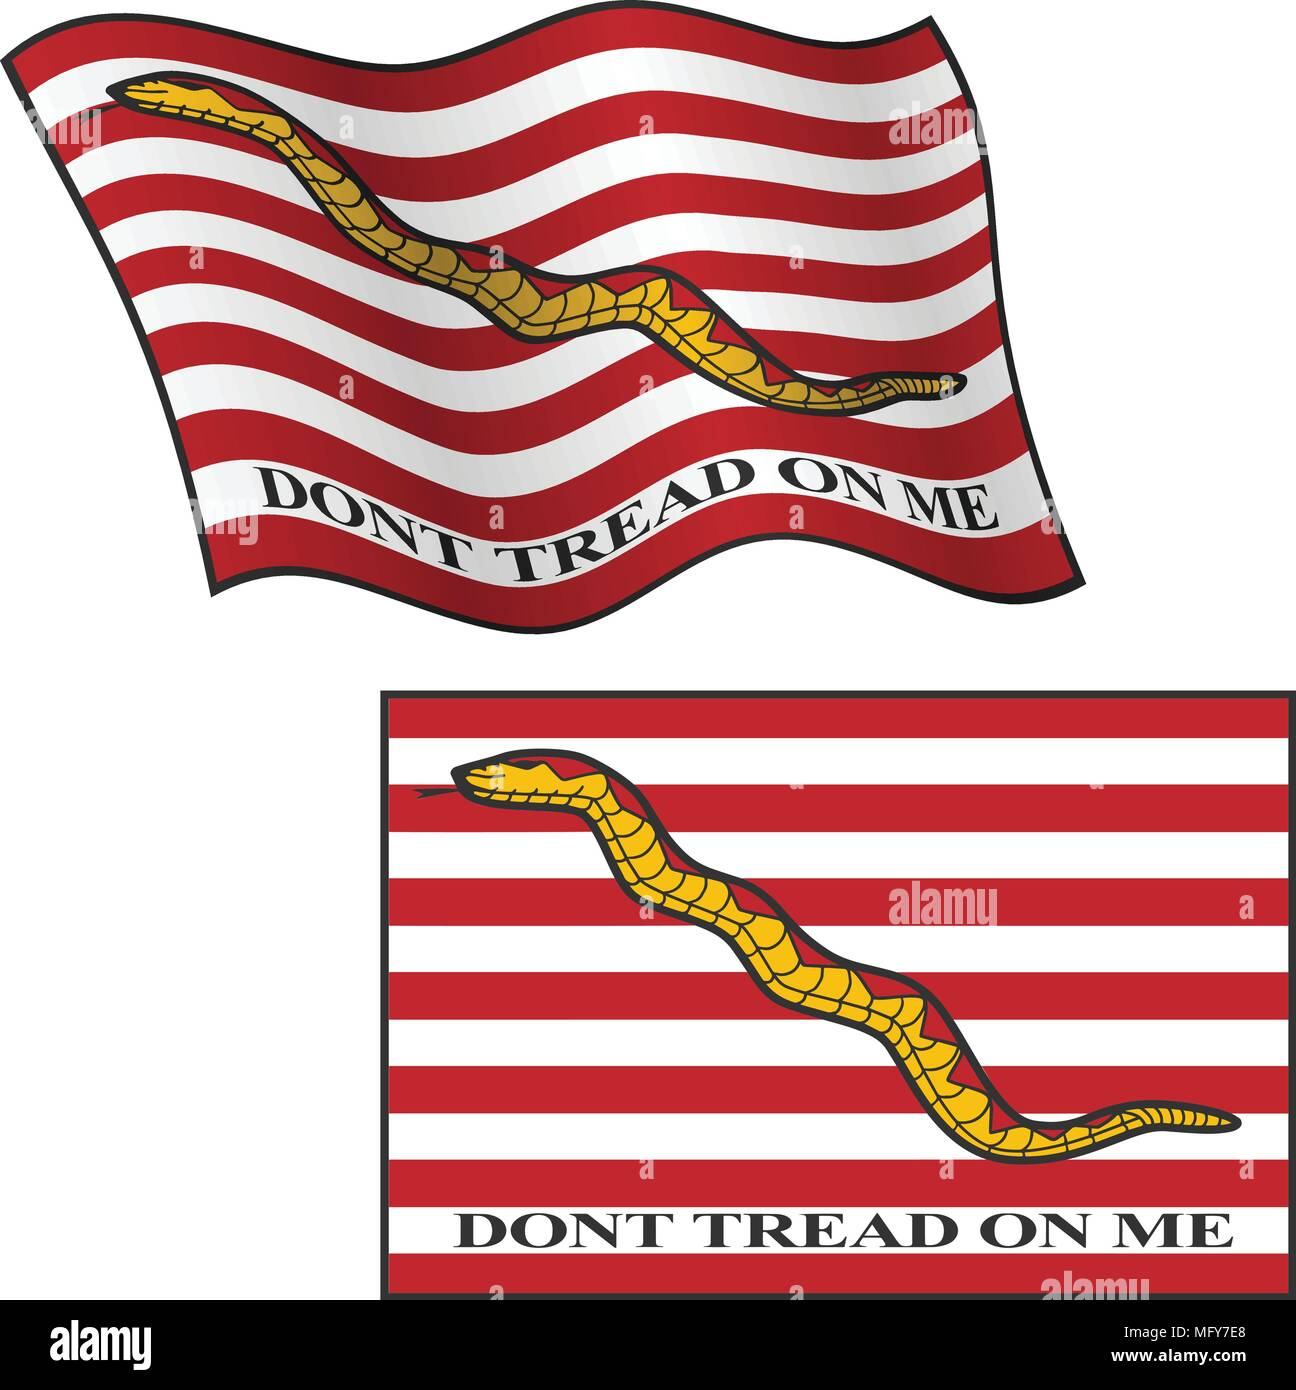 Dont Tread On Me Flag, Waving and Flat, Vector Graphic Illustration - Stock Vector